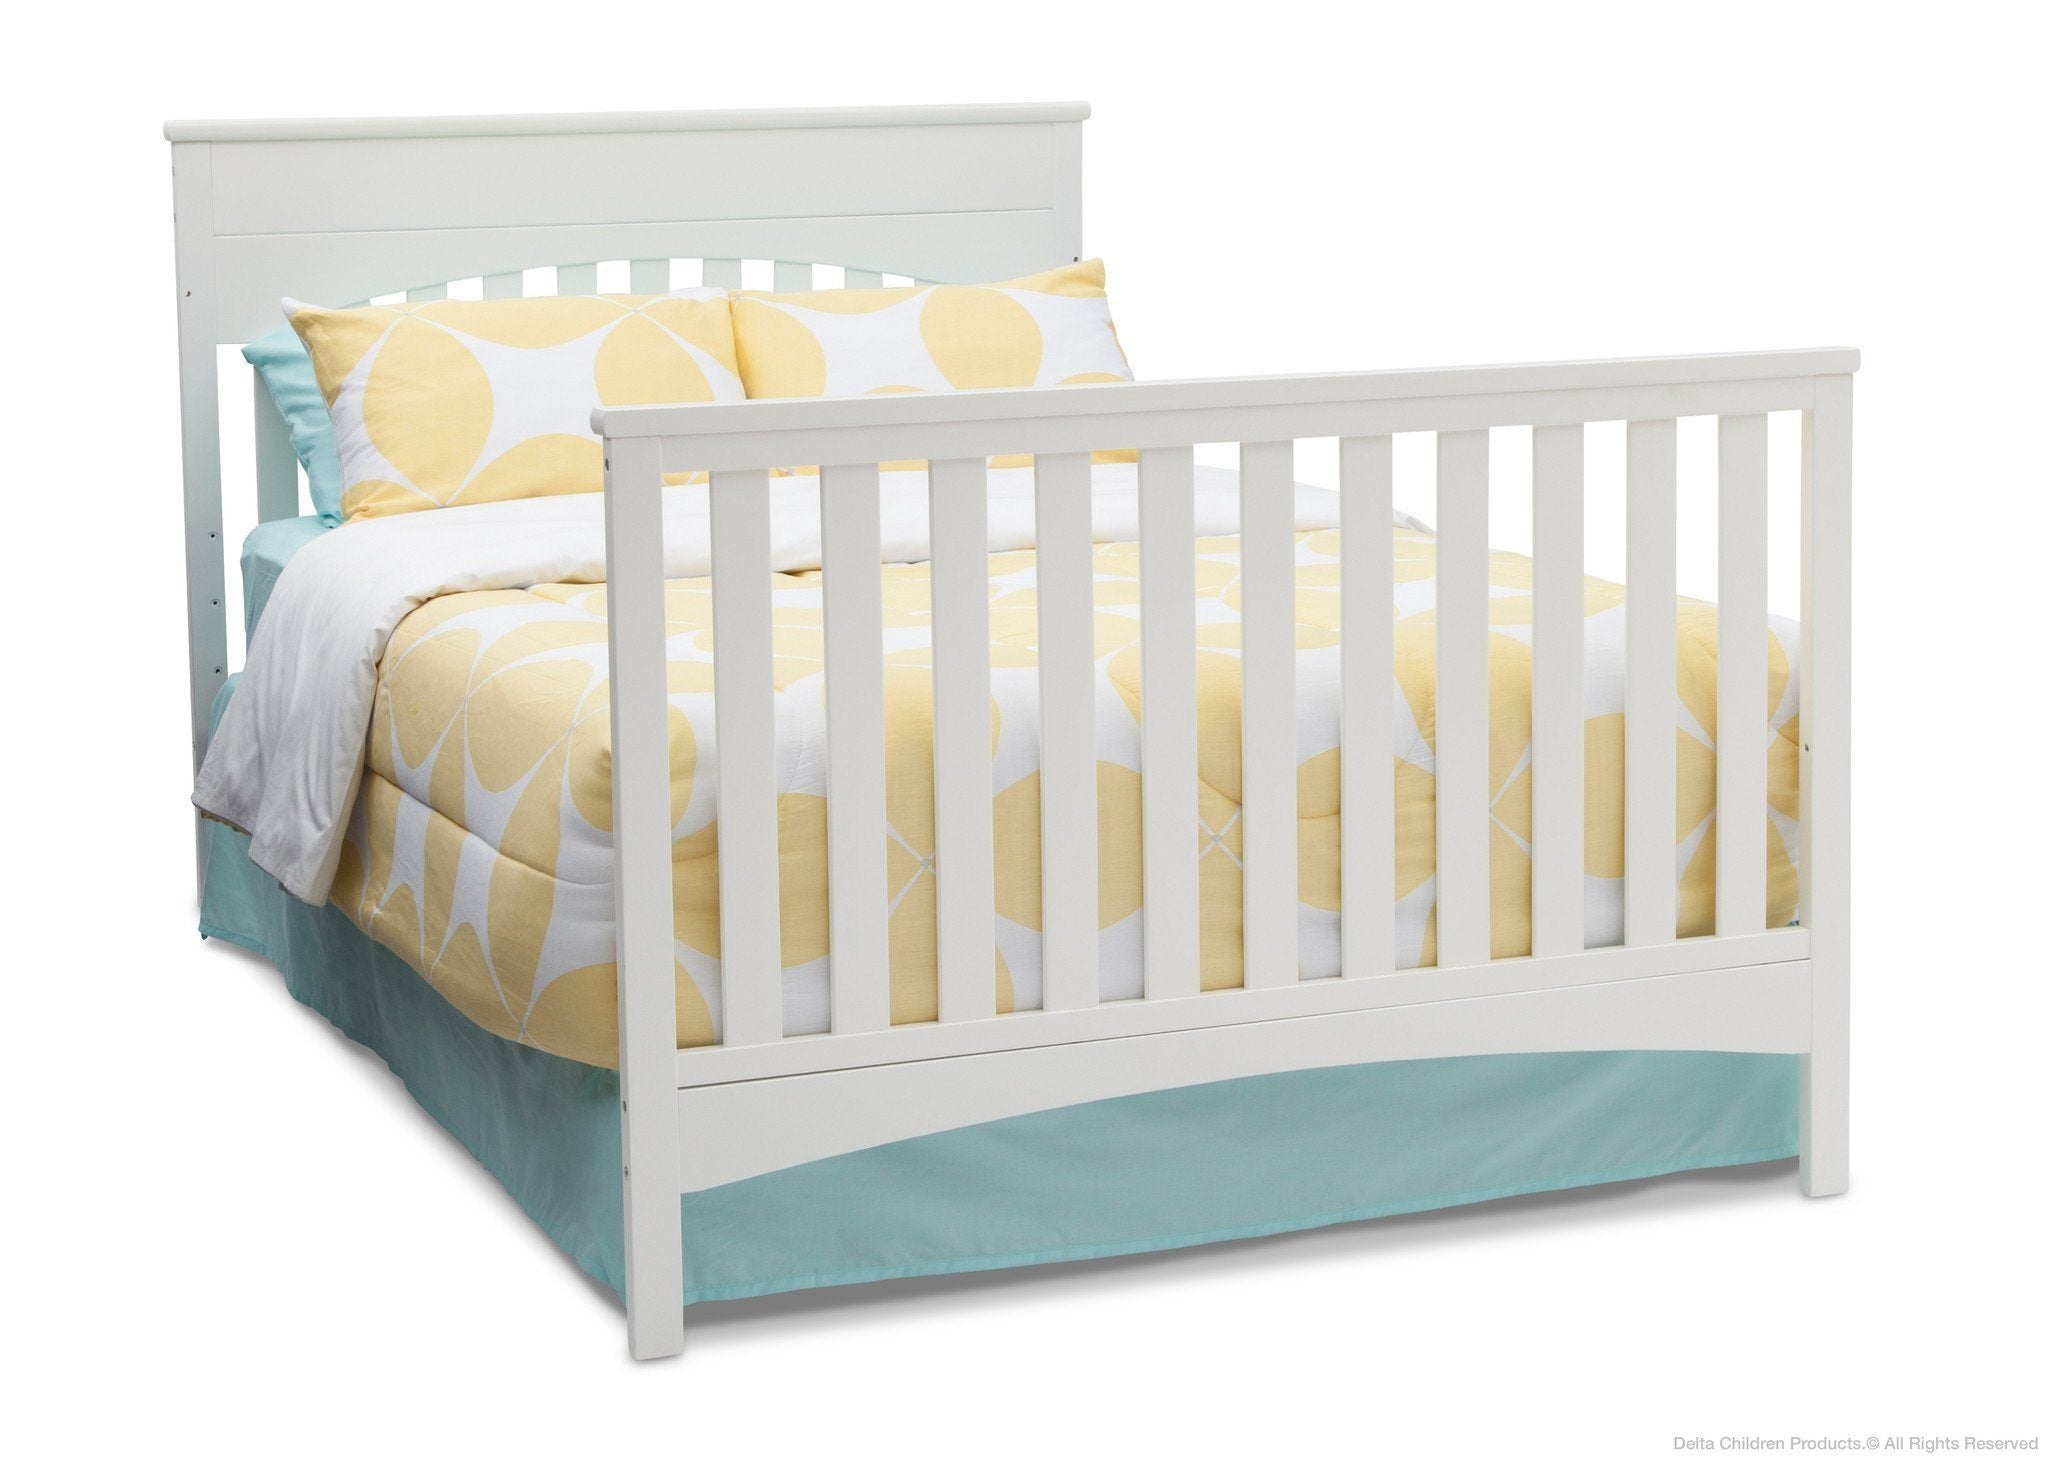 Delta Children White Ambiance (108) Bennington Lifestyle 4-in-1 Crib, Full-Size Bed Conversion a6a